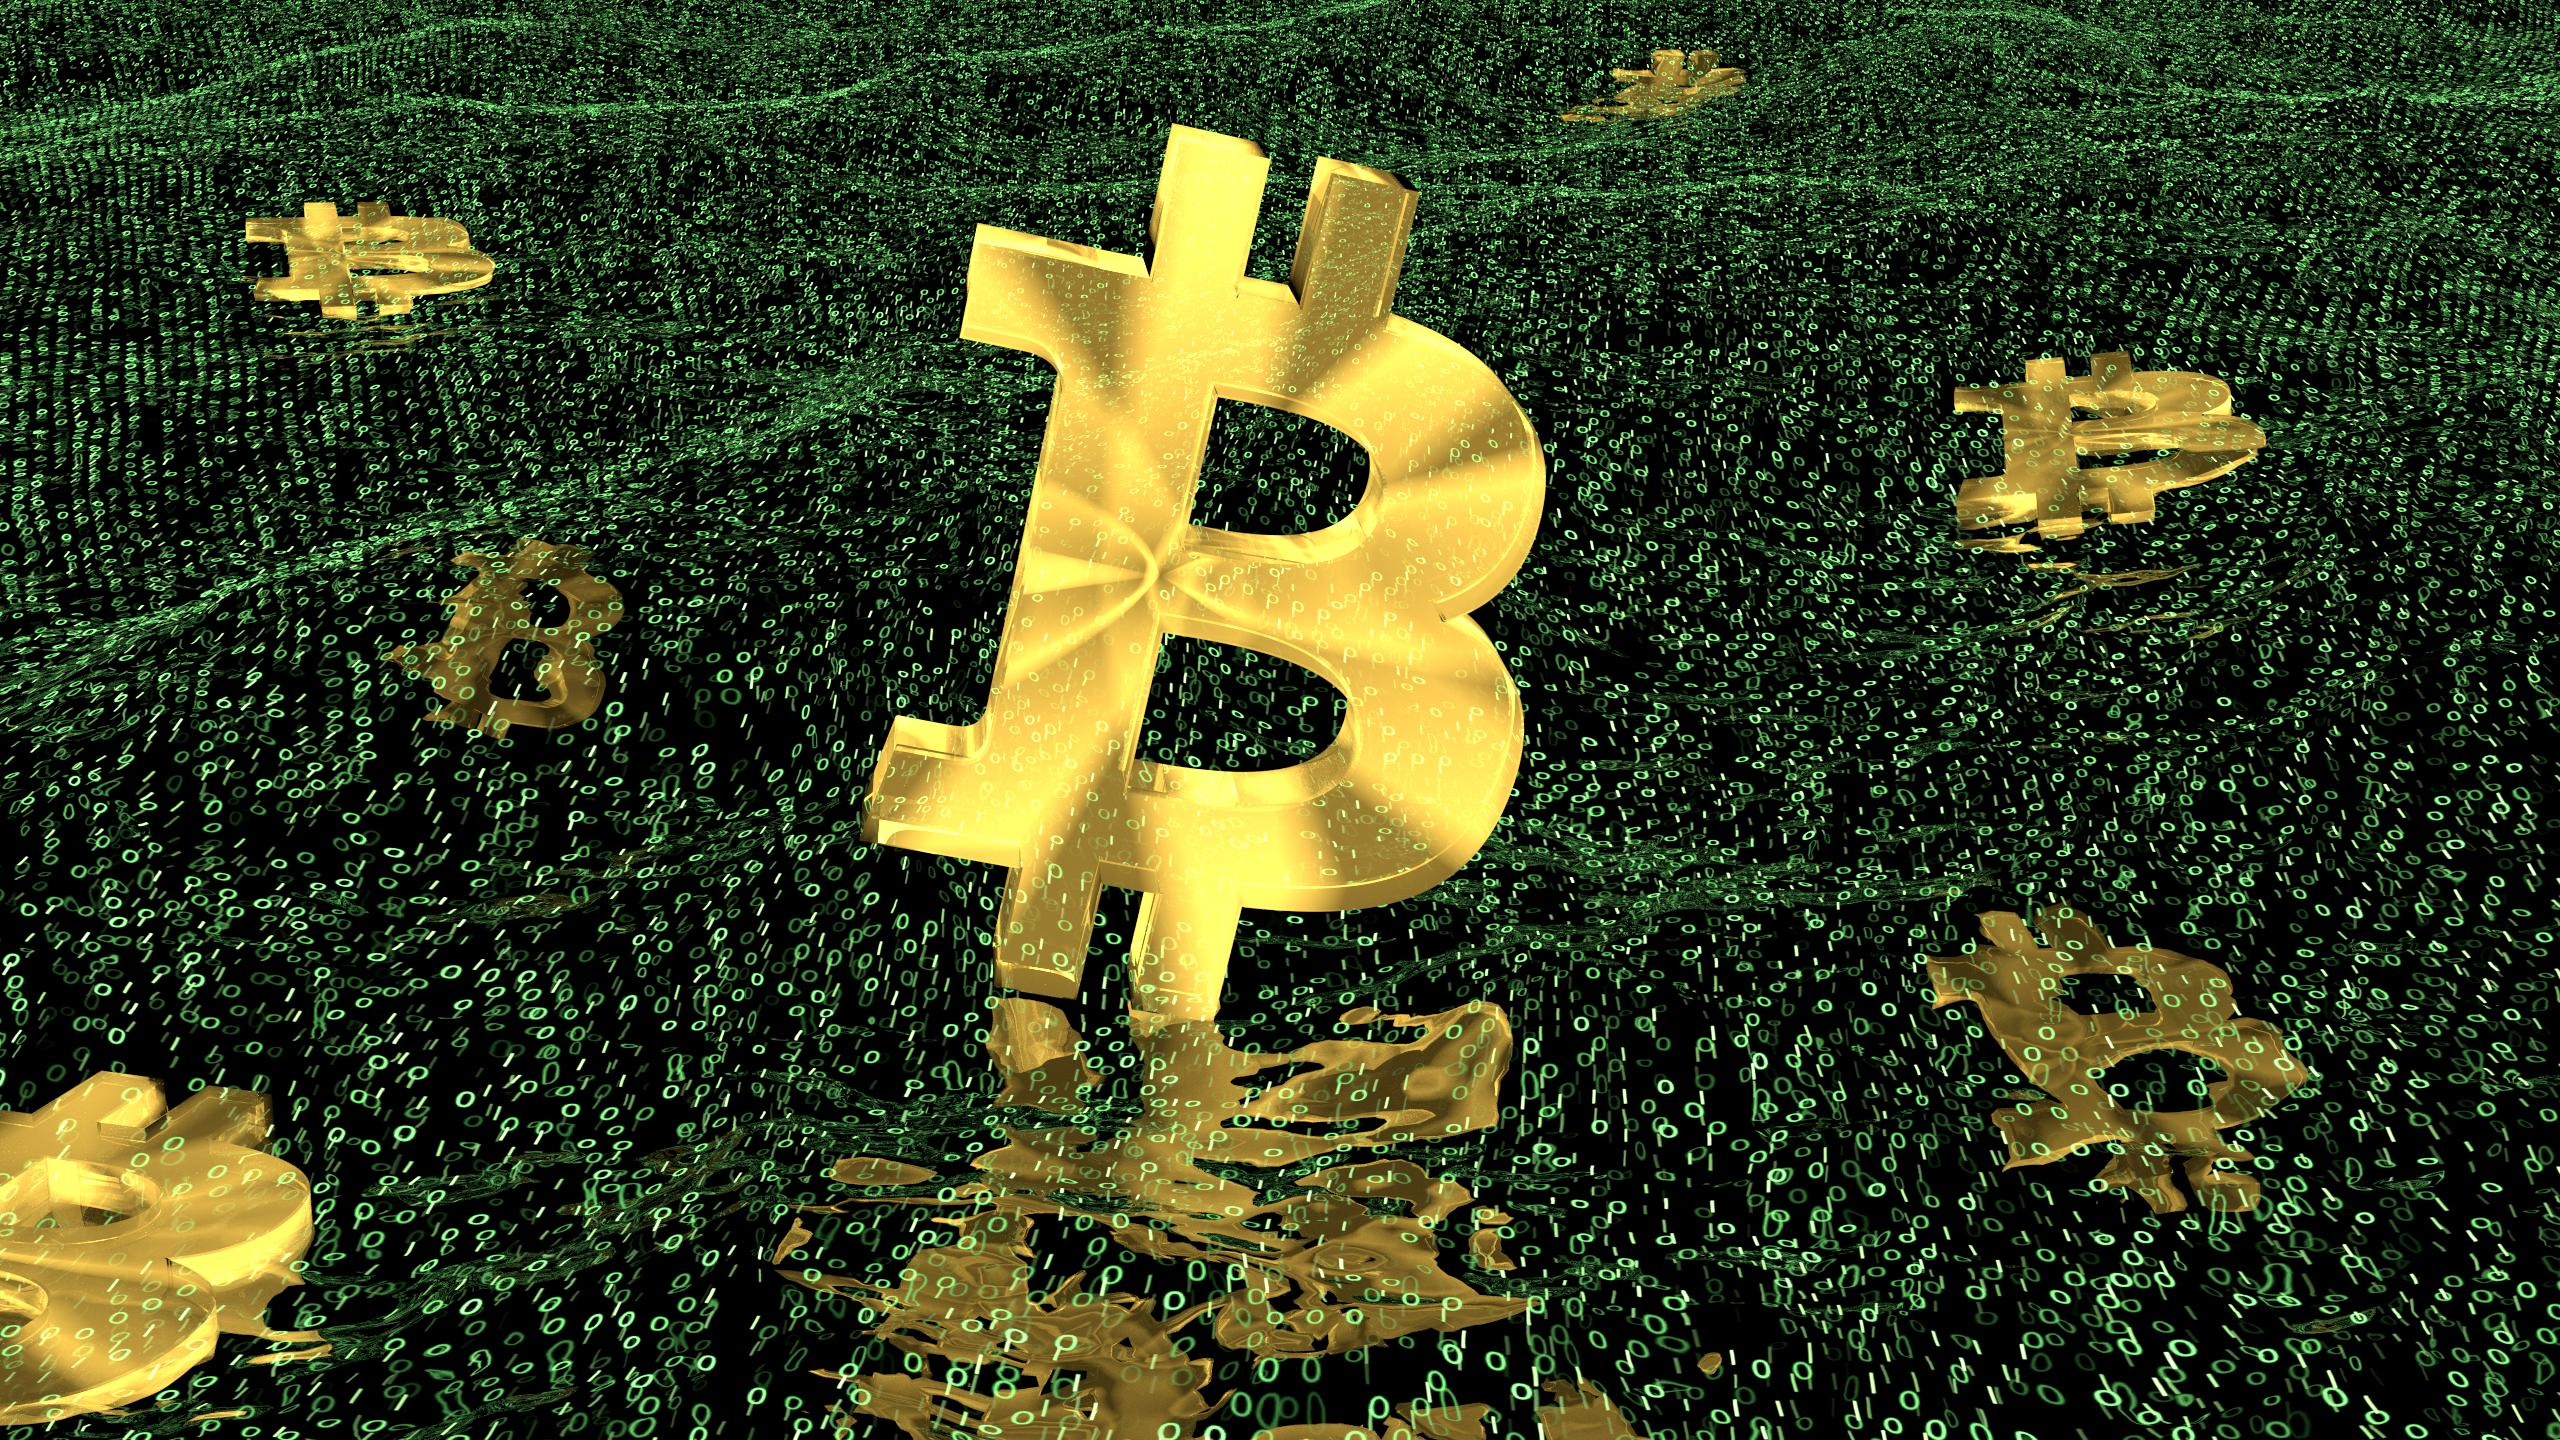 Bitcoin 3D renders - Free to use as wallpaper, for promotion, or ...